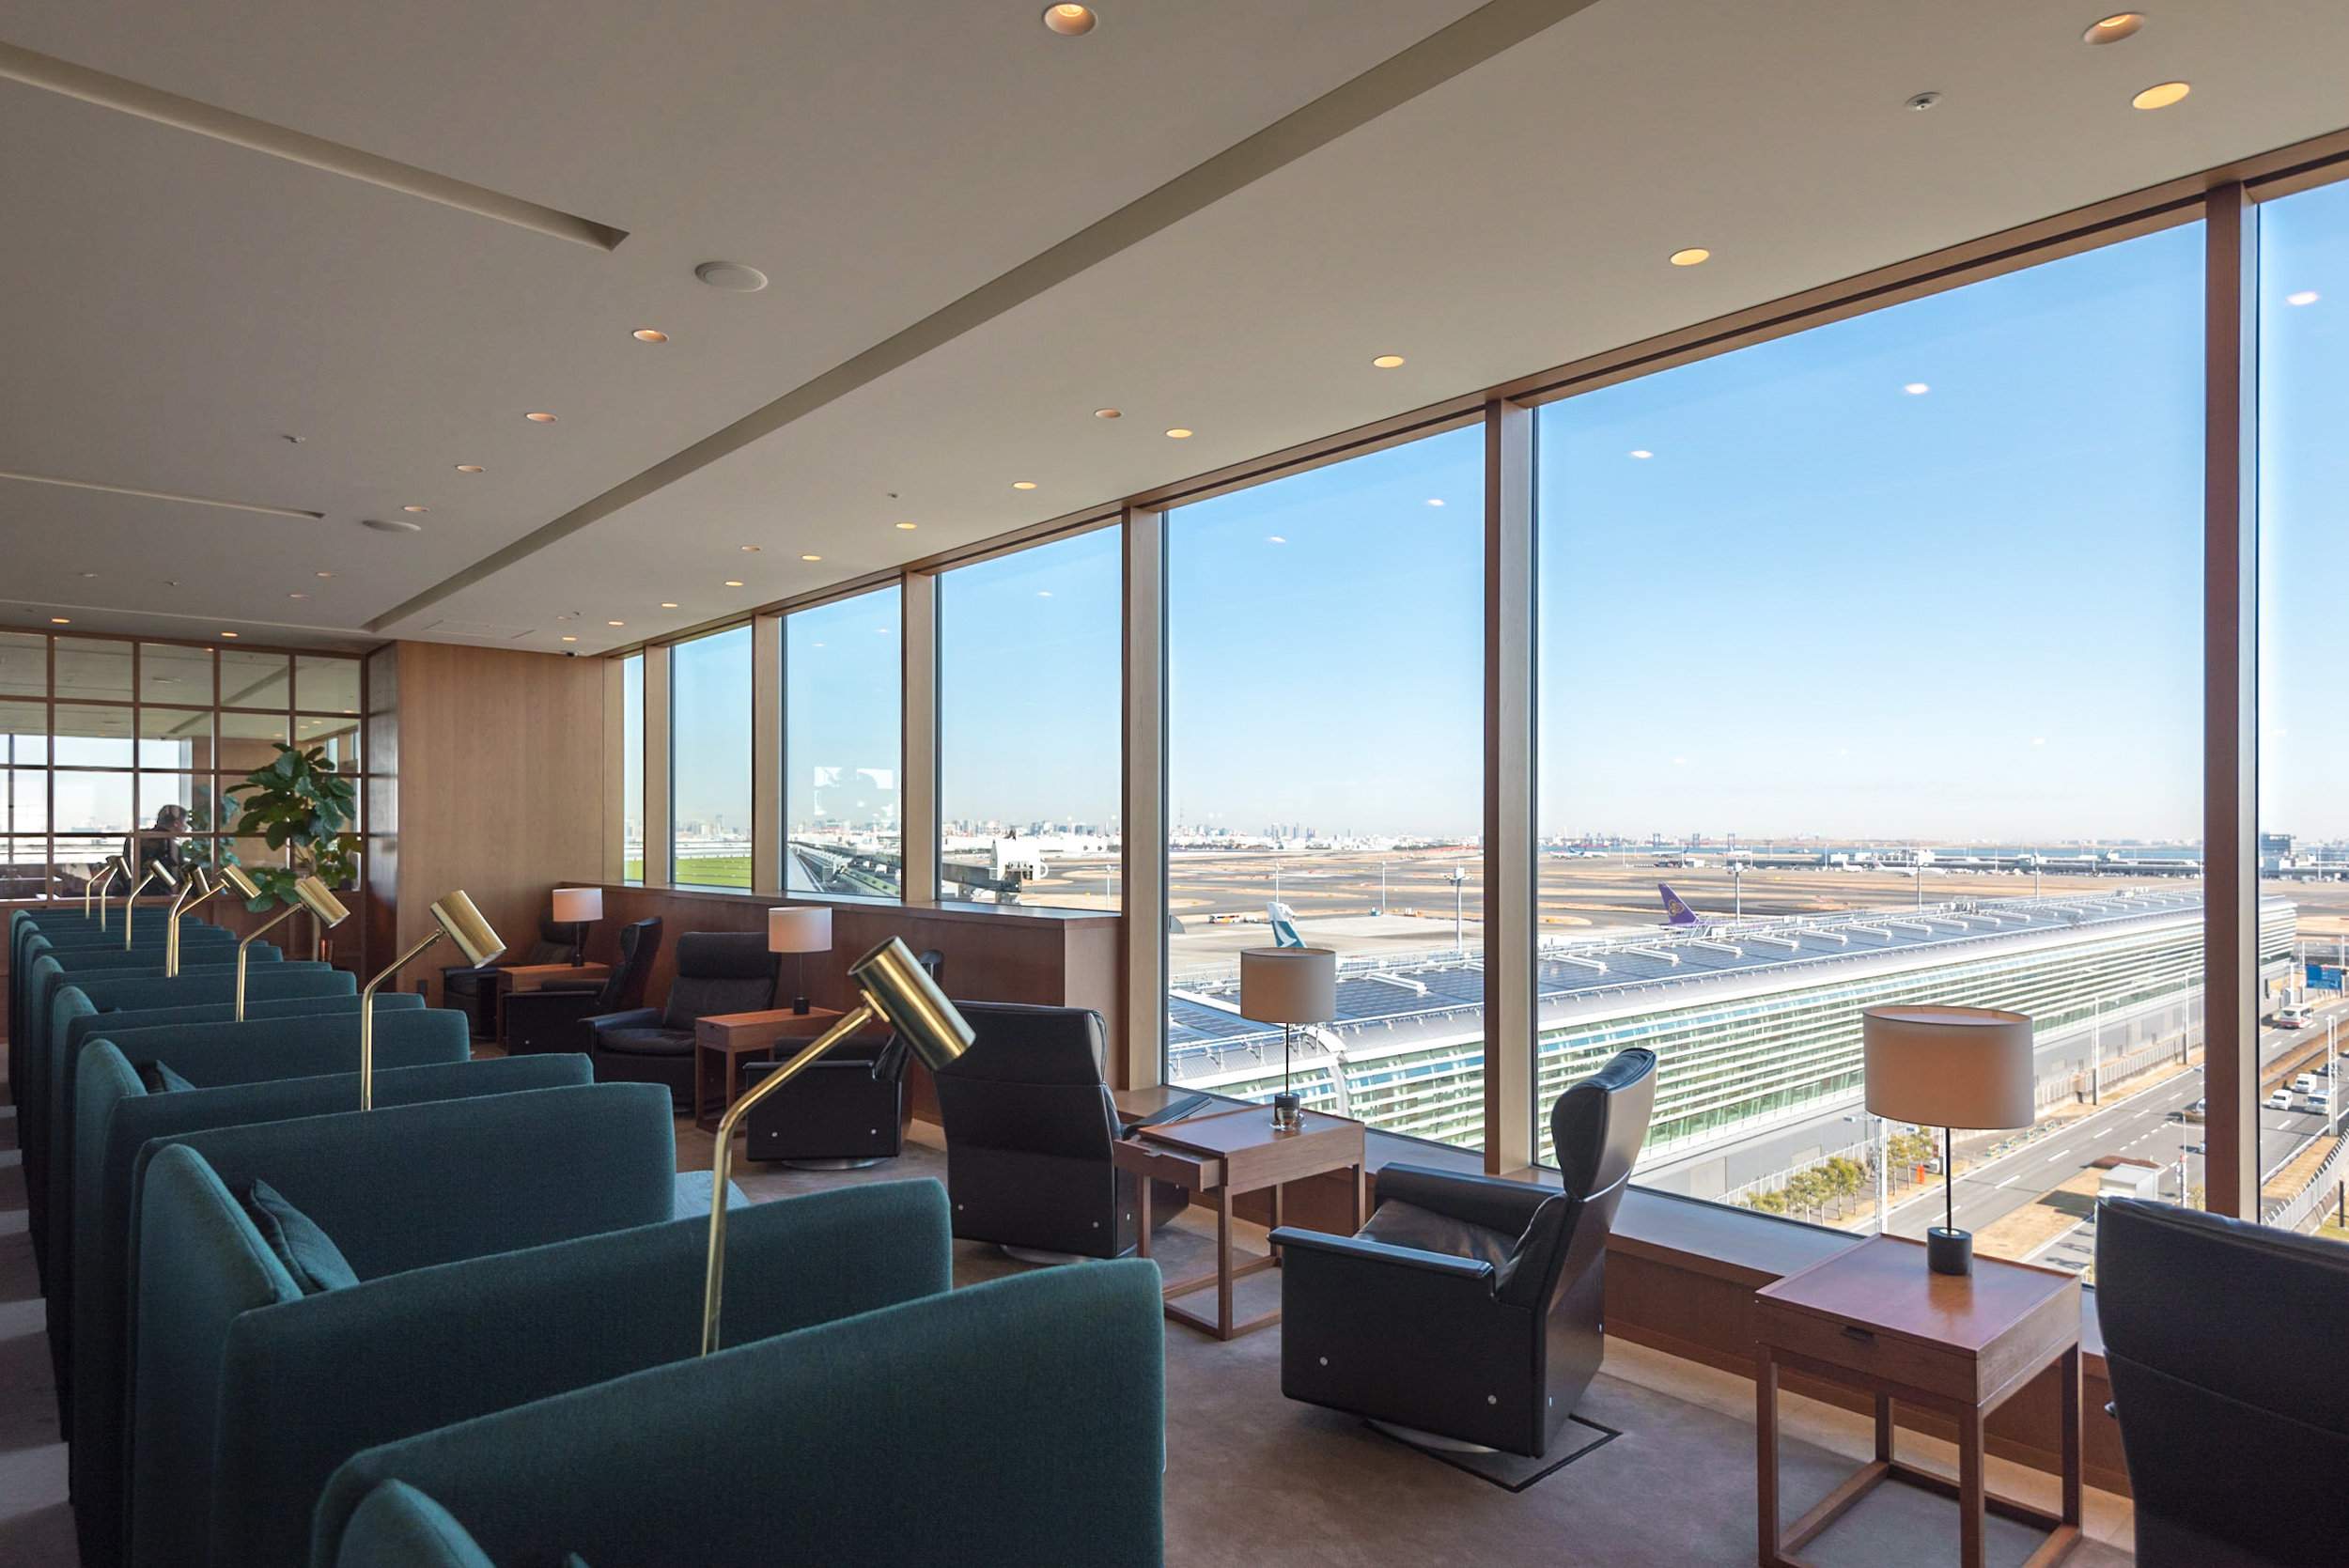 Views of the Runway  Cathay Pacific Lounge - Haneda Airport (HND)